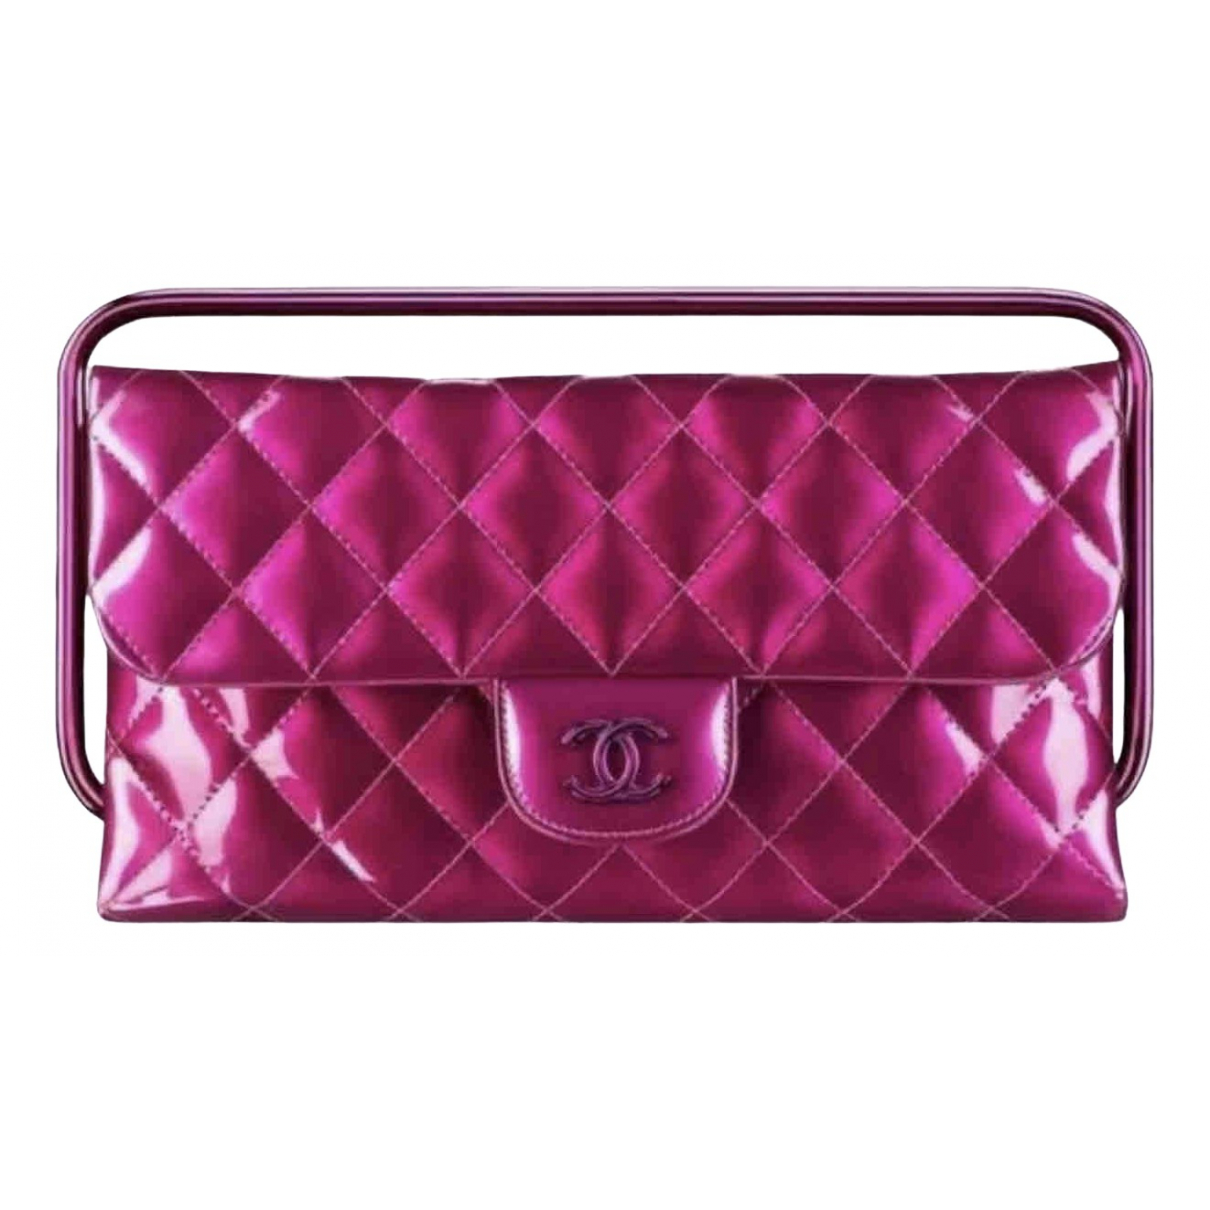 Chanel Timeless/Classique Clutch in  Rosa Lackleder